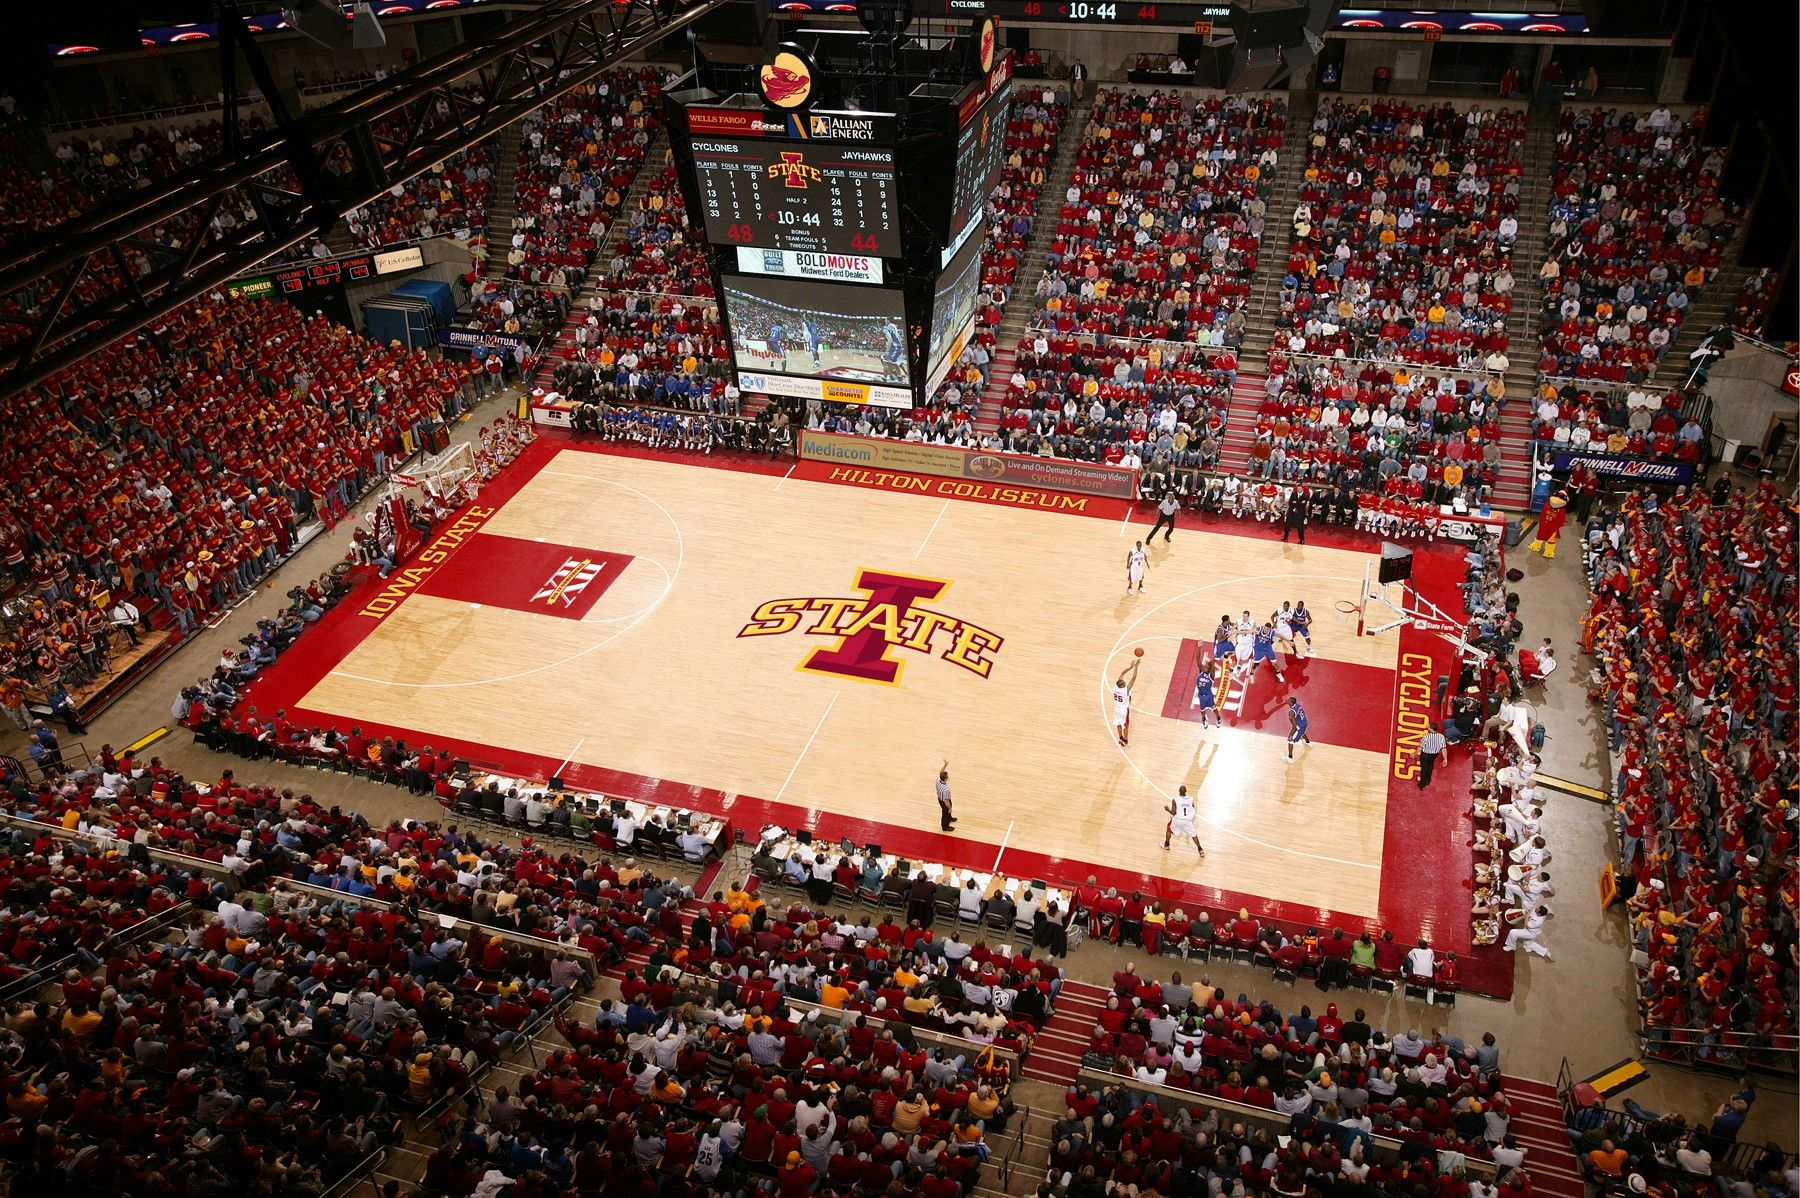 Iowa State Loses Logo Faith Dignity About 20 Pounds Iowa State Iowa State Athletics Iowa State University